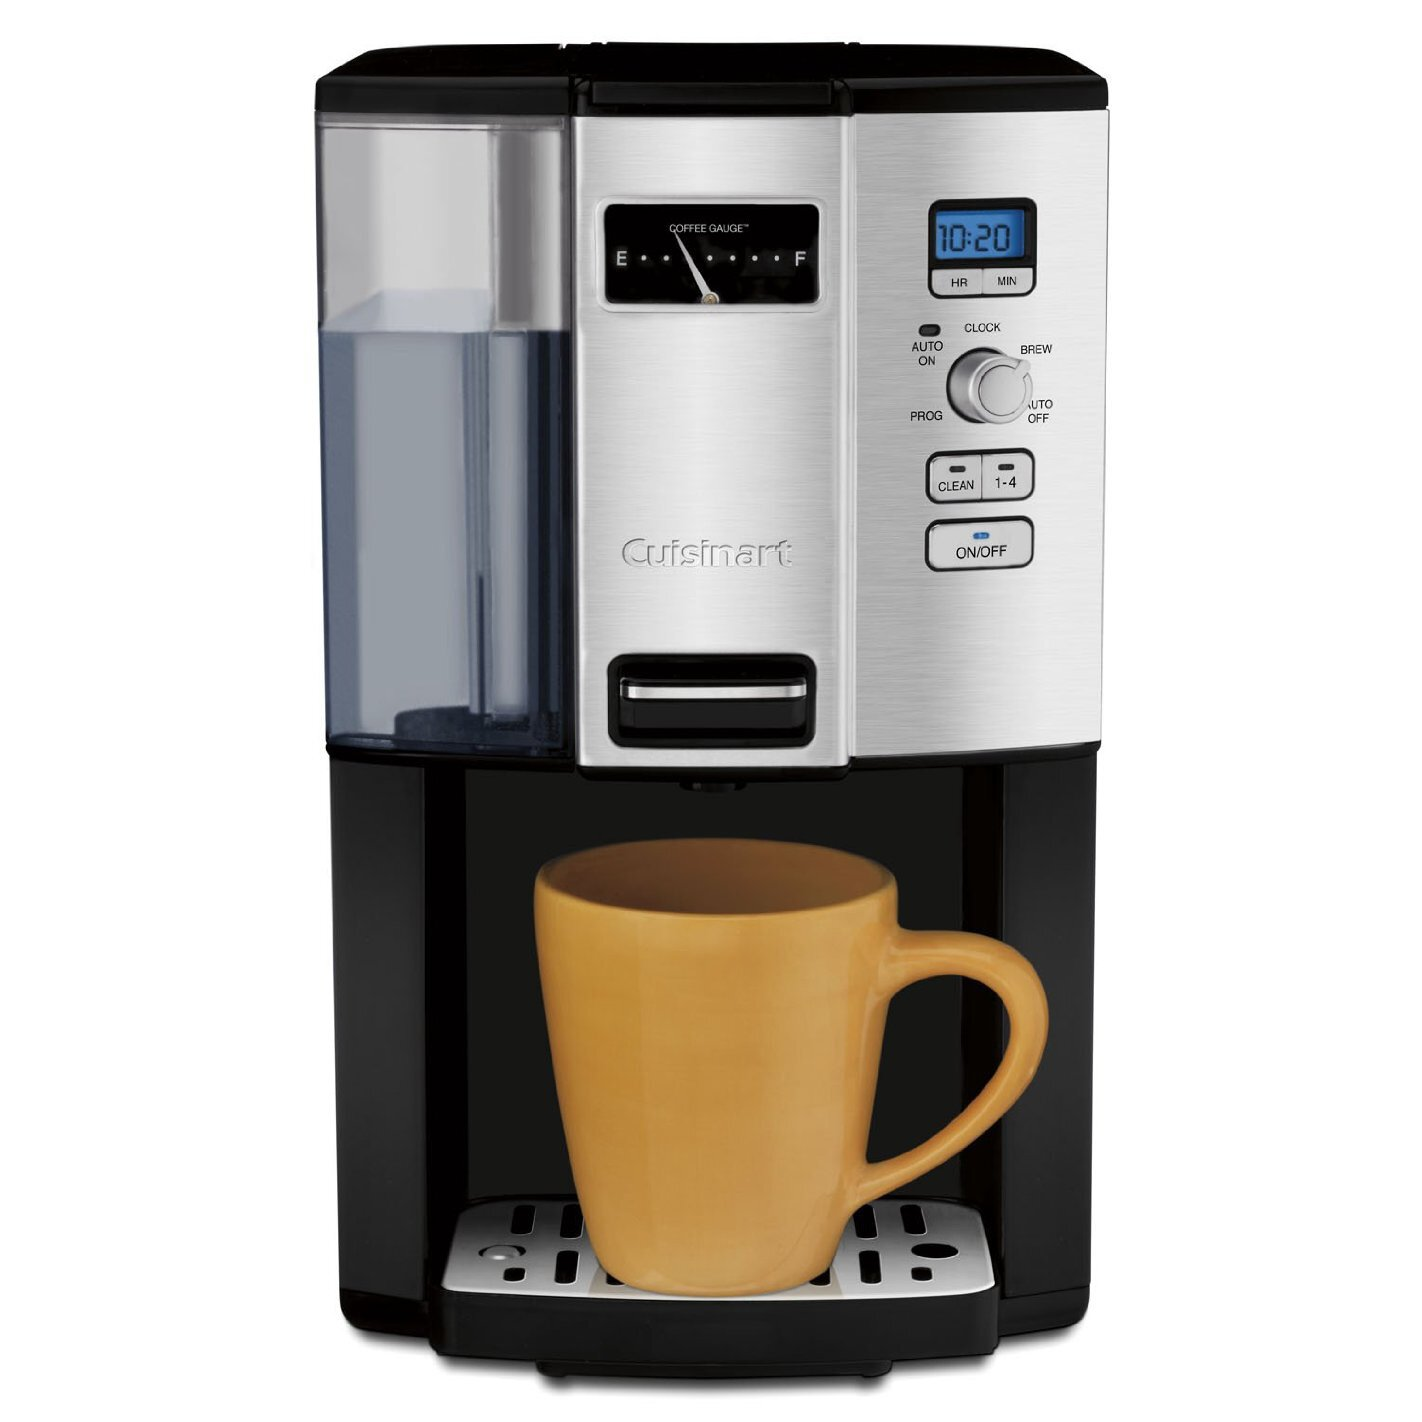 Cuisinart Cuisinart 12 Cup Programmable Coffee Maker & Reviews Wayfair